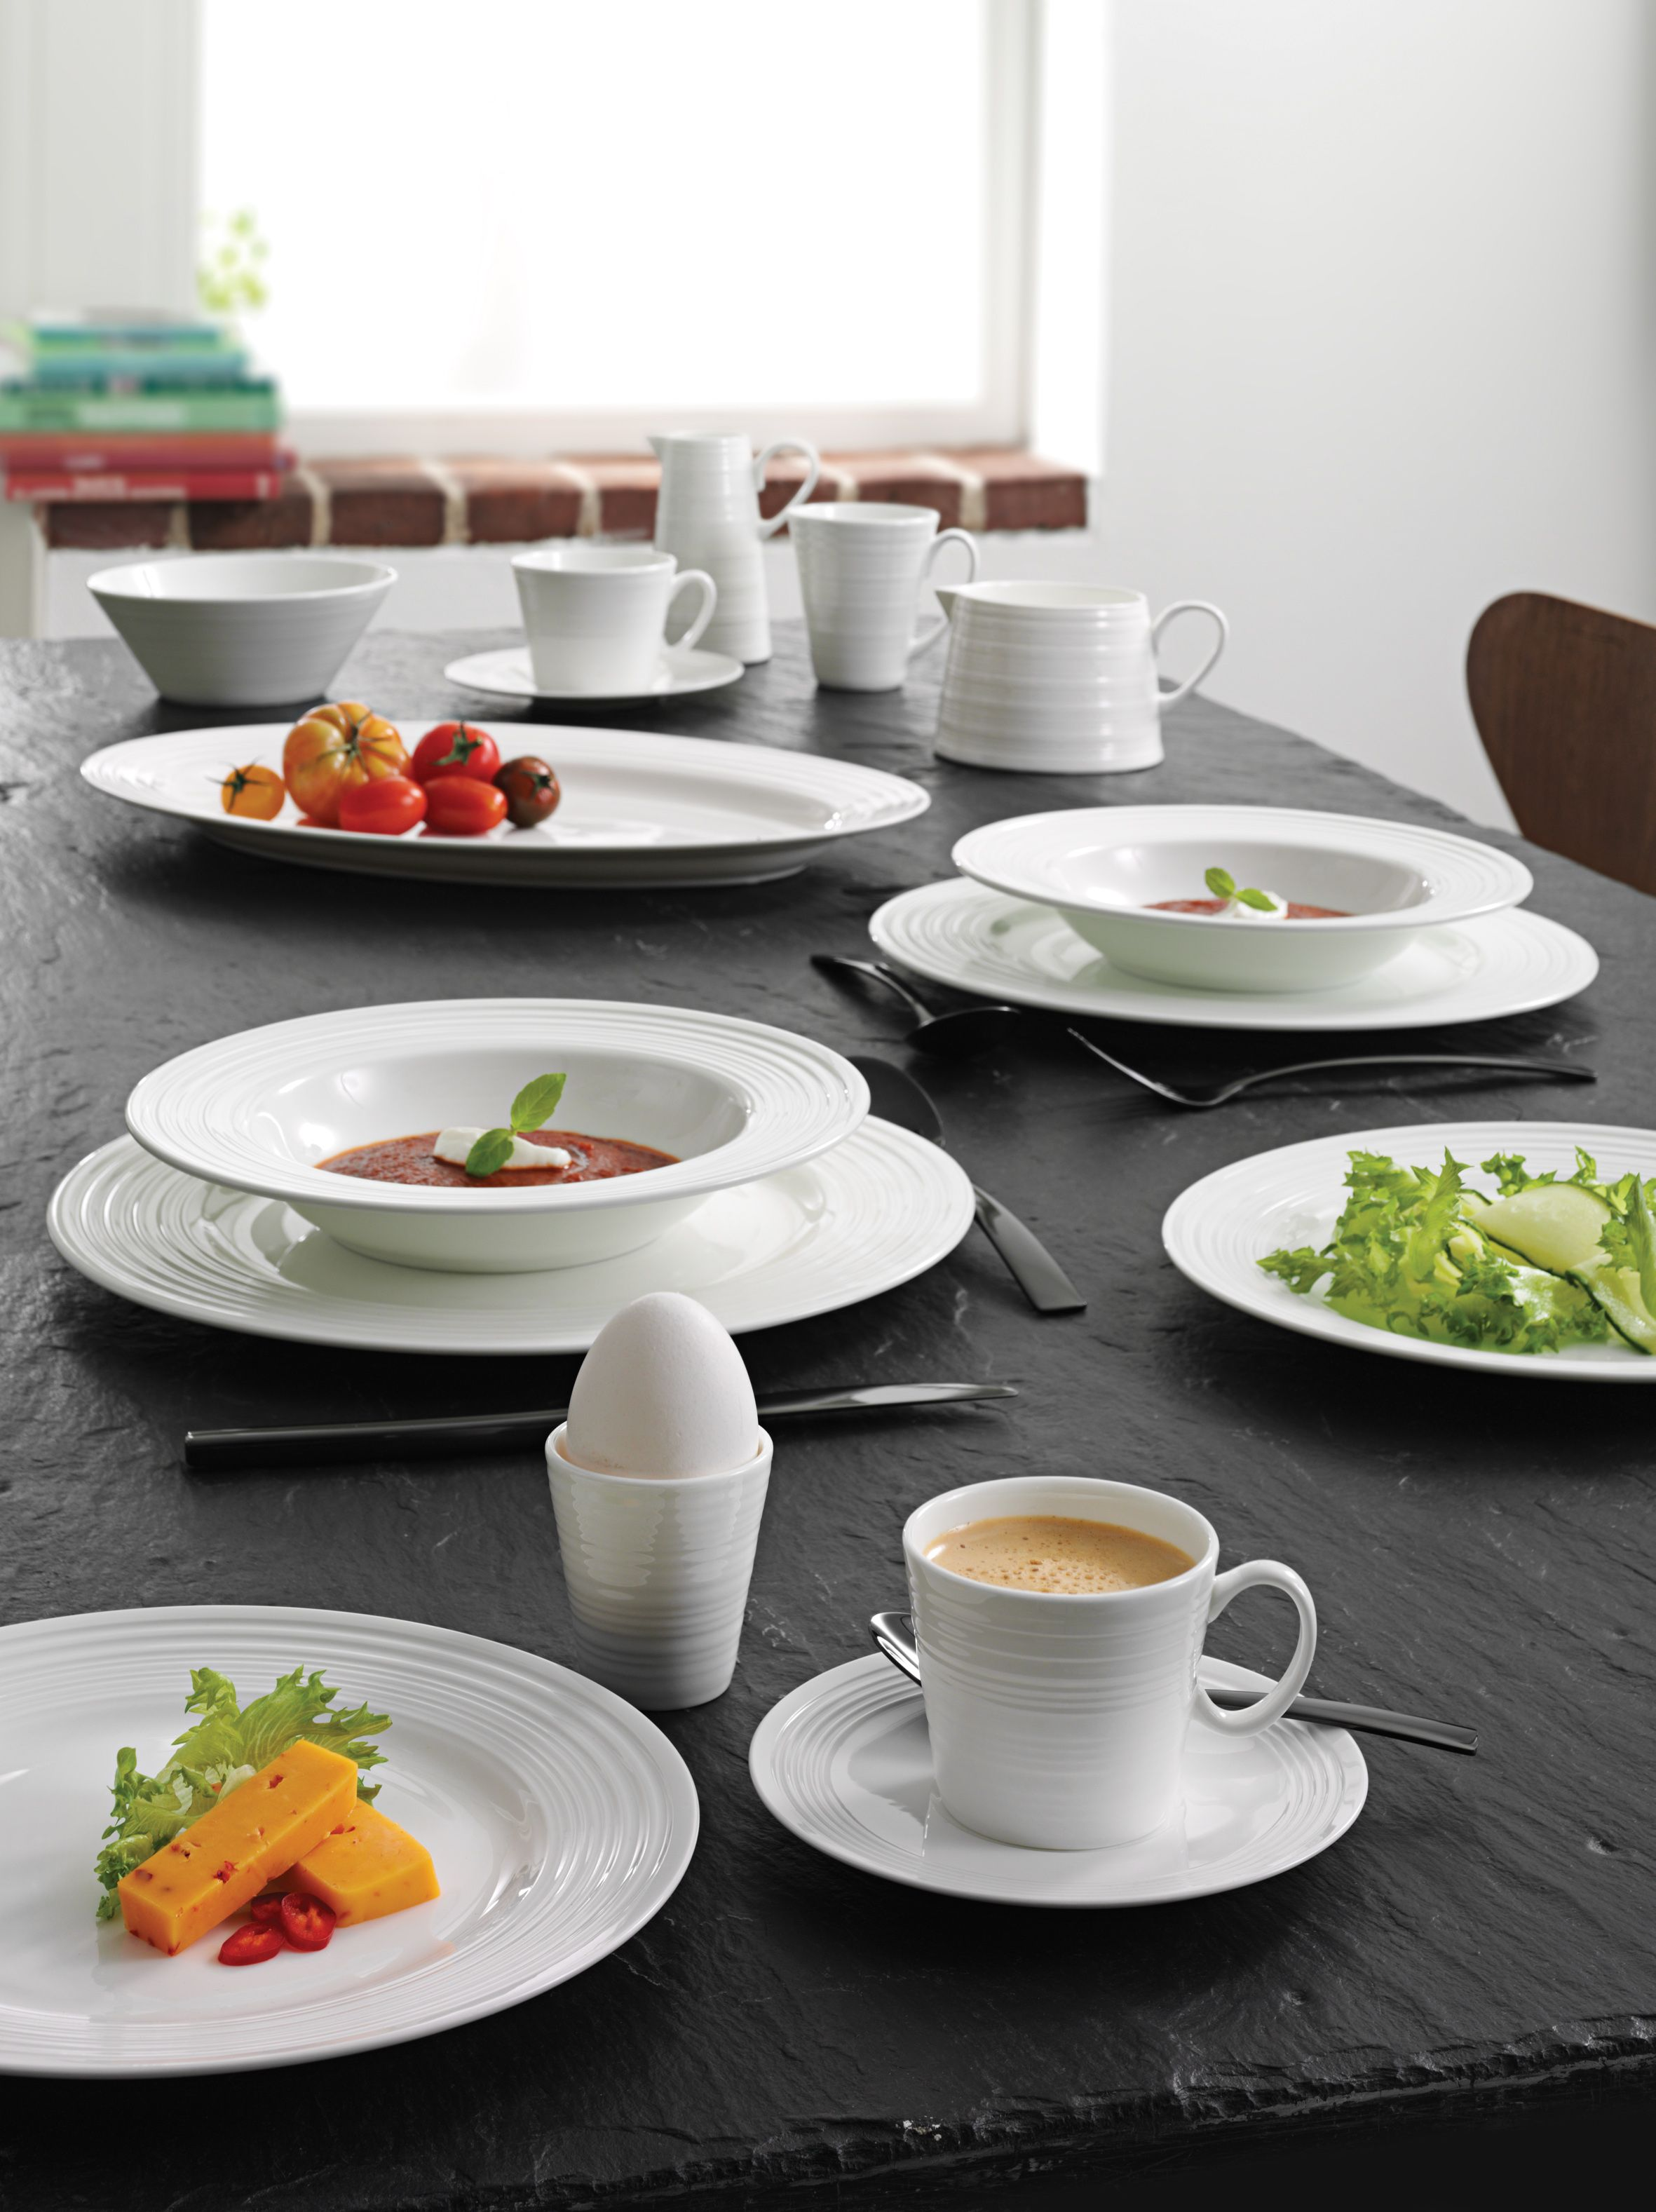 Breakfast with a detail. #breakfast #tablesetting #aida #detail #products #service #white